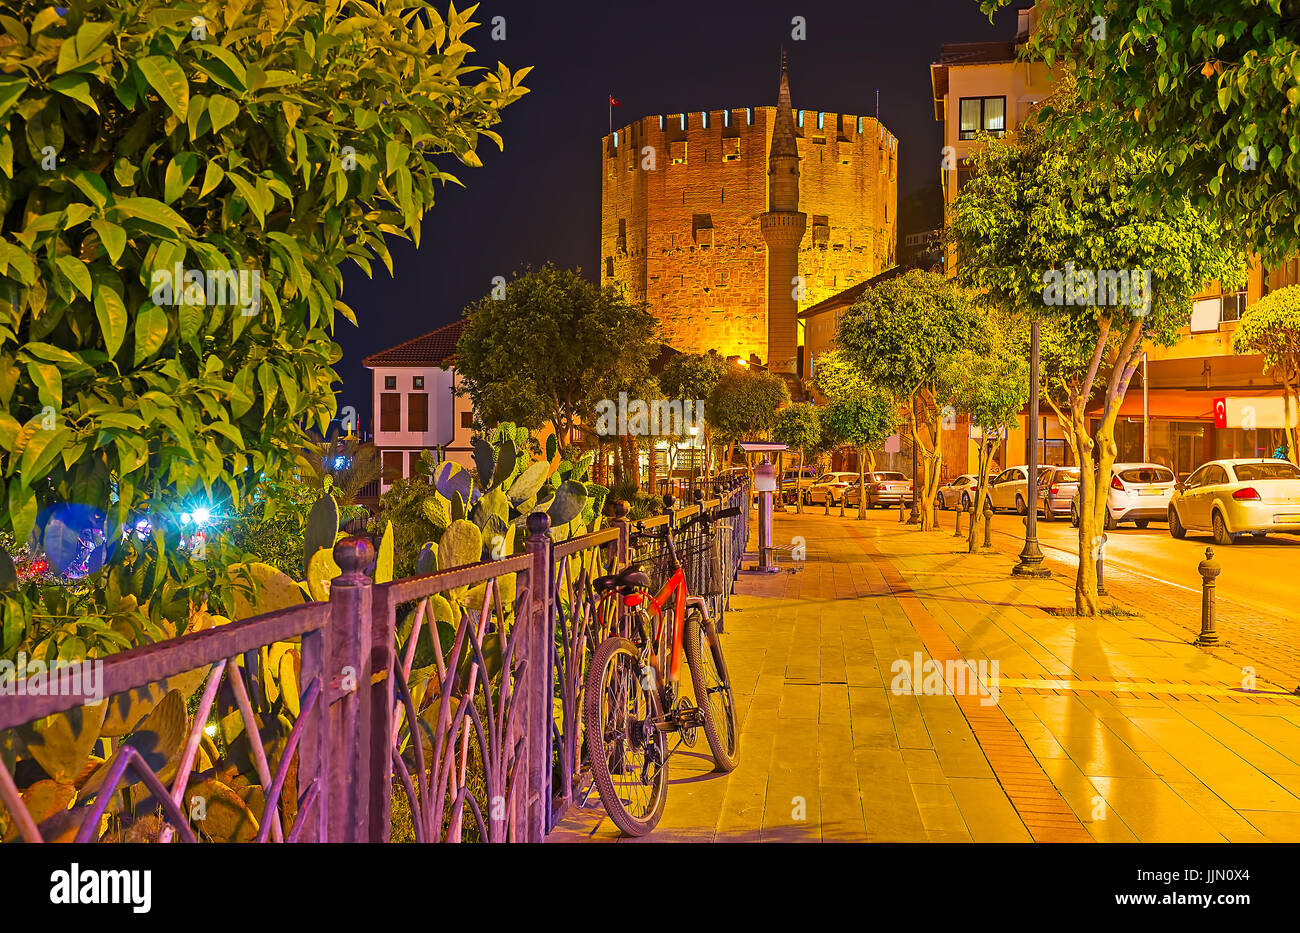 The evening walk along Iskele street to the Kizil Kule - the famous Red Tower of Alanya, Turkey. - Stock Image